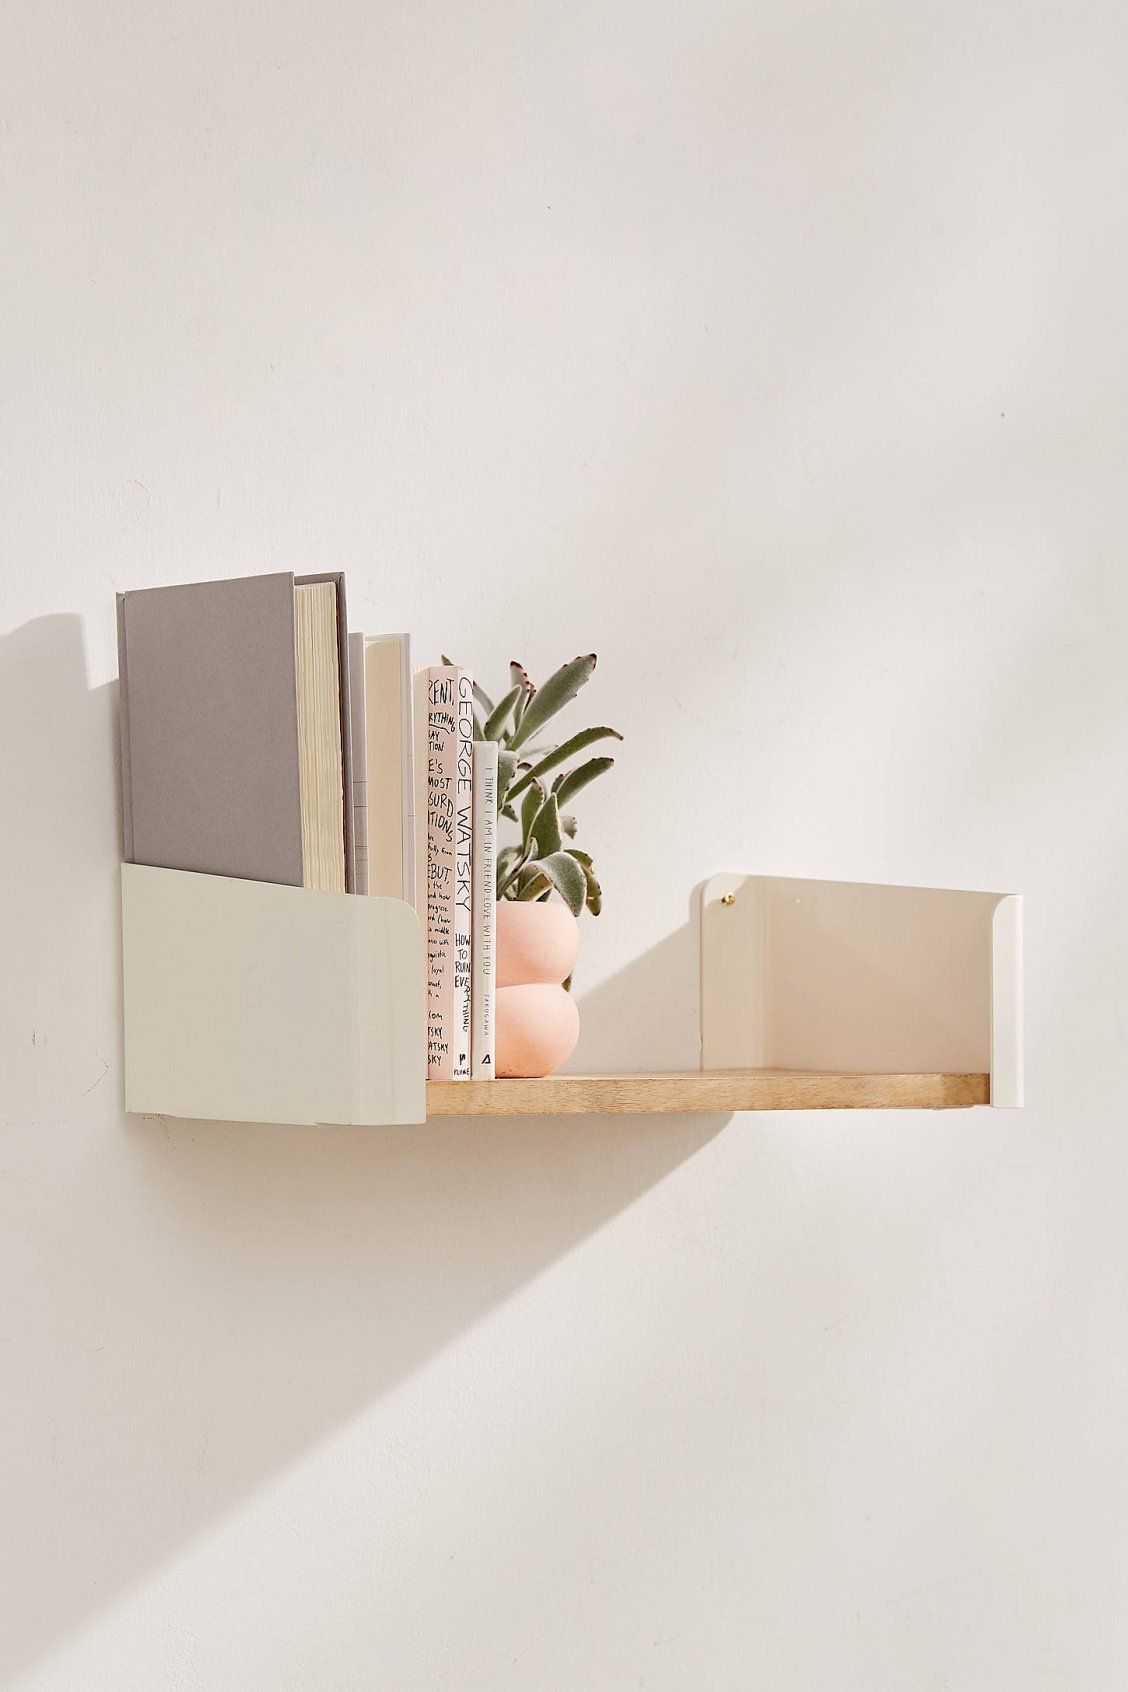 lara bookend wall shelf get organized shelves floating bookends urban outfitters can you lay vinyl tile over cleat mount lcd with timber shelving ideas cube shaped expedit unit